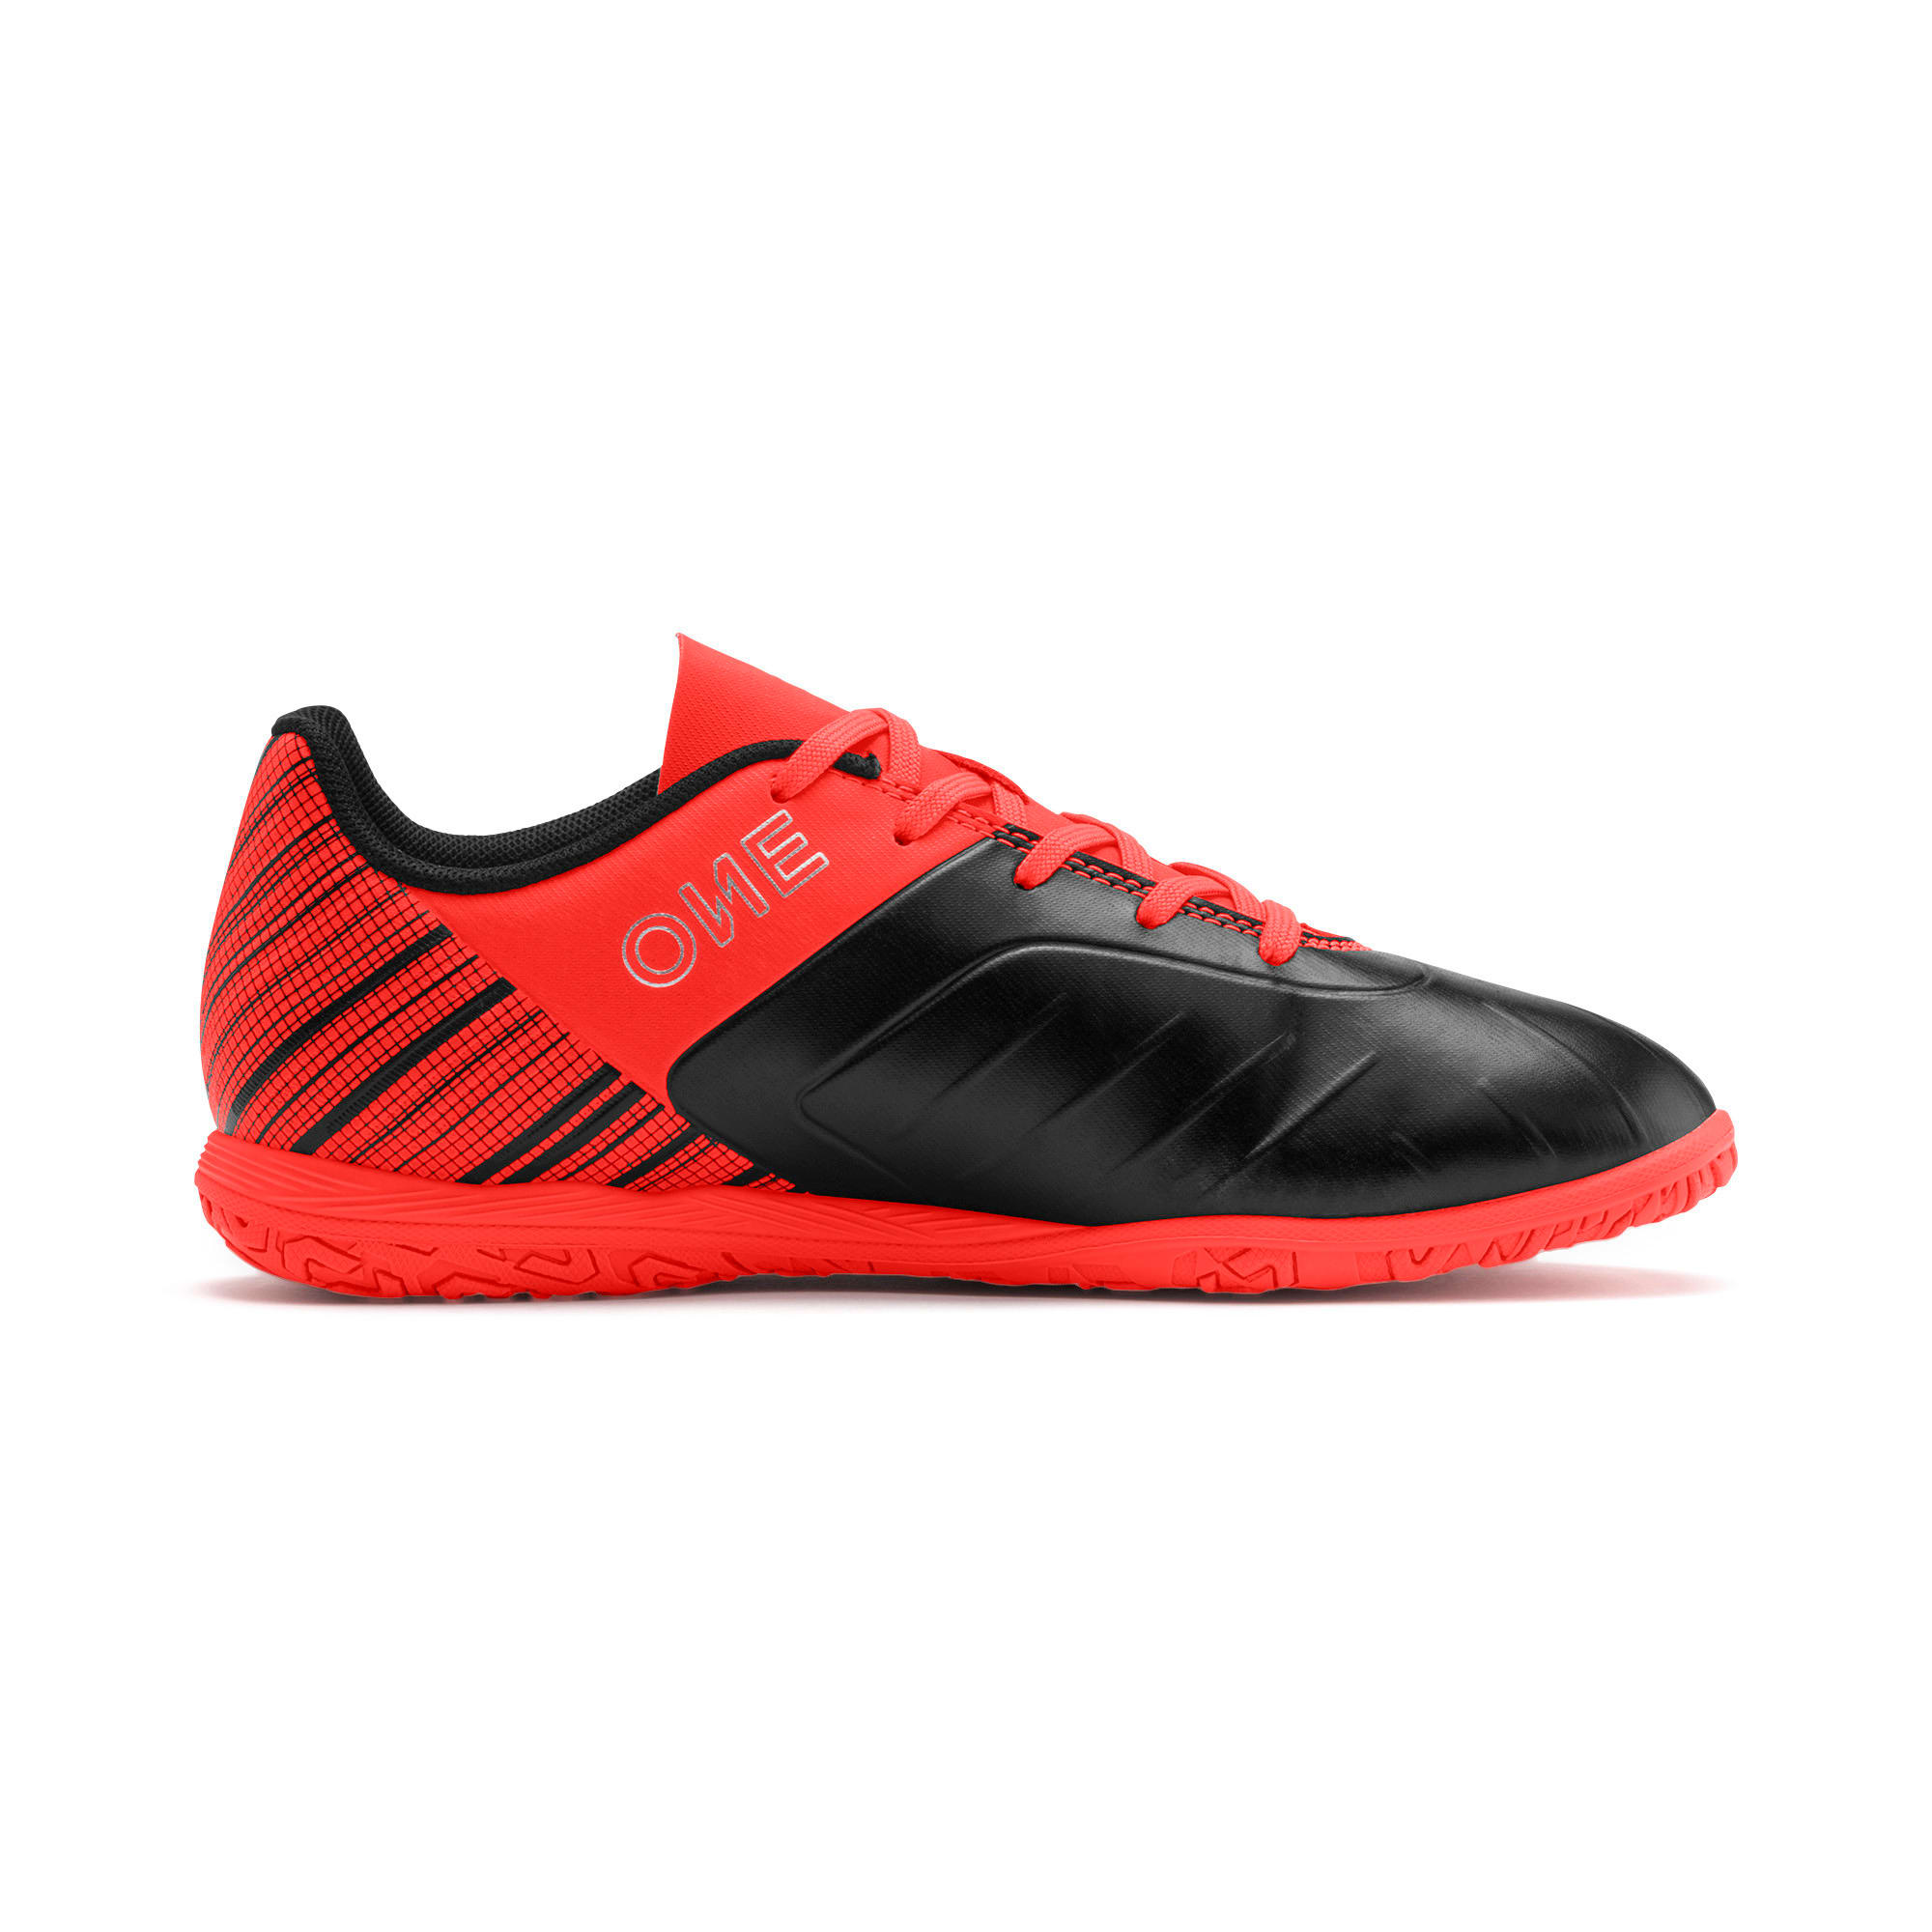 Thumbnail 5 of PUMA ONE 5.4 IT Youth Football Boots, Black-Nrgy Red-Aged Silver, medium